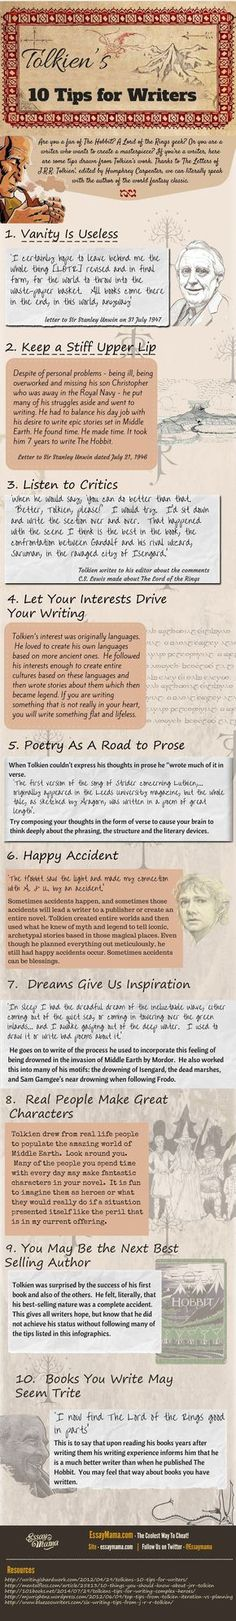 Tolkien's 10 Tips for Writers. Get tips for writing from one of the greats. These tips will help you become a better writer.